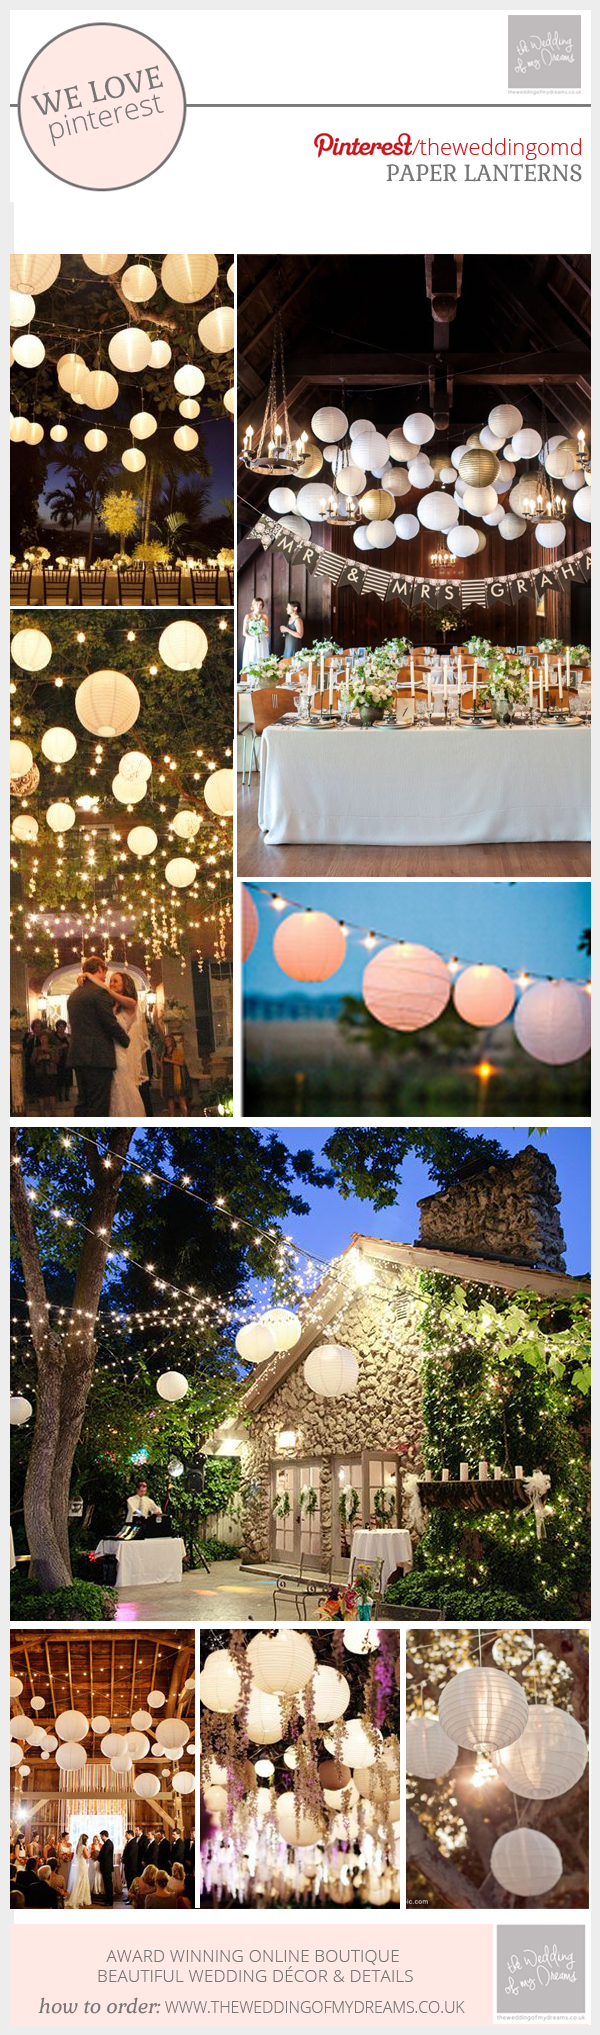 paper lanters for weddings inspiration board